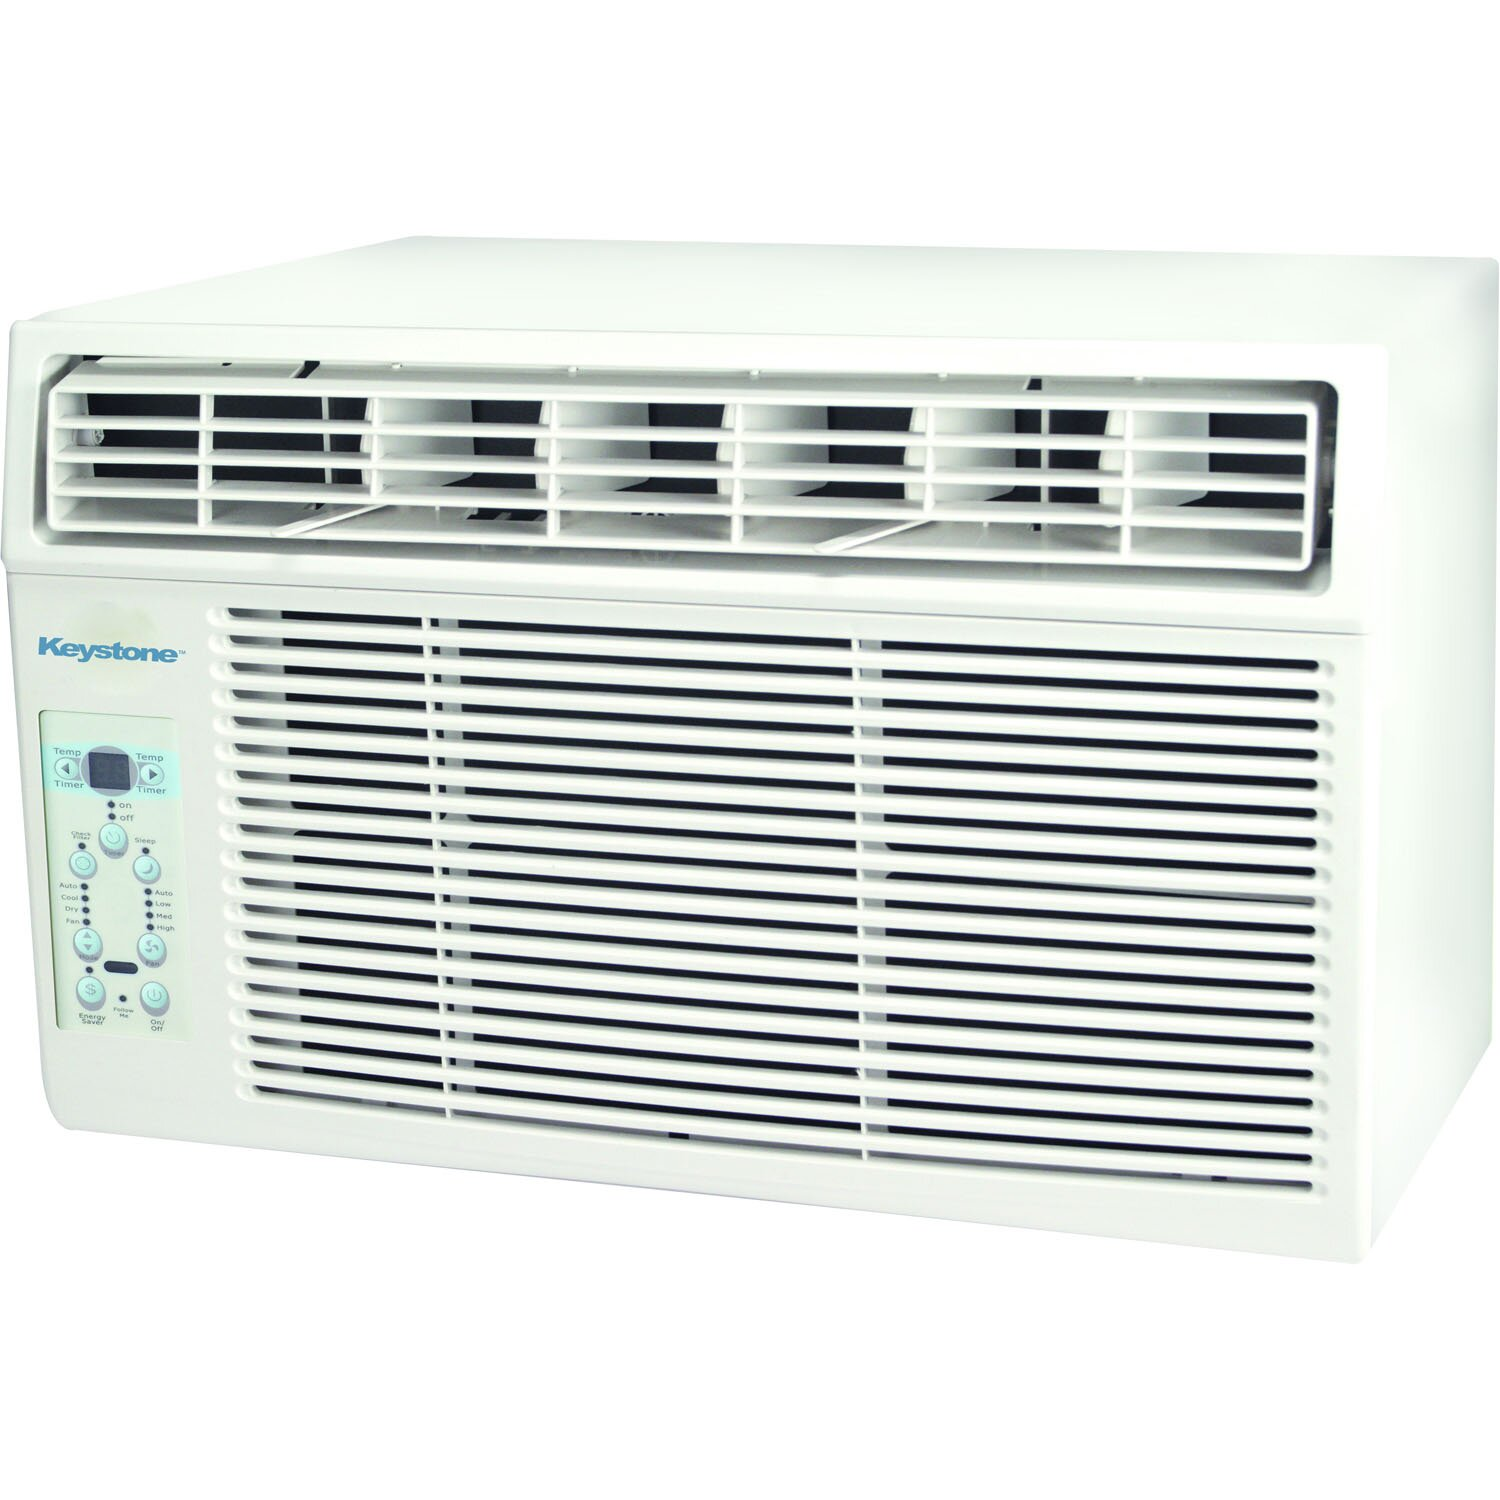 keystone 6000 btu window air conditioner with remote wayfair